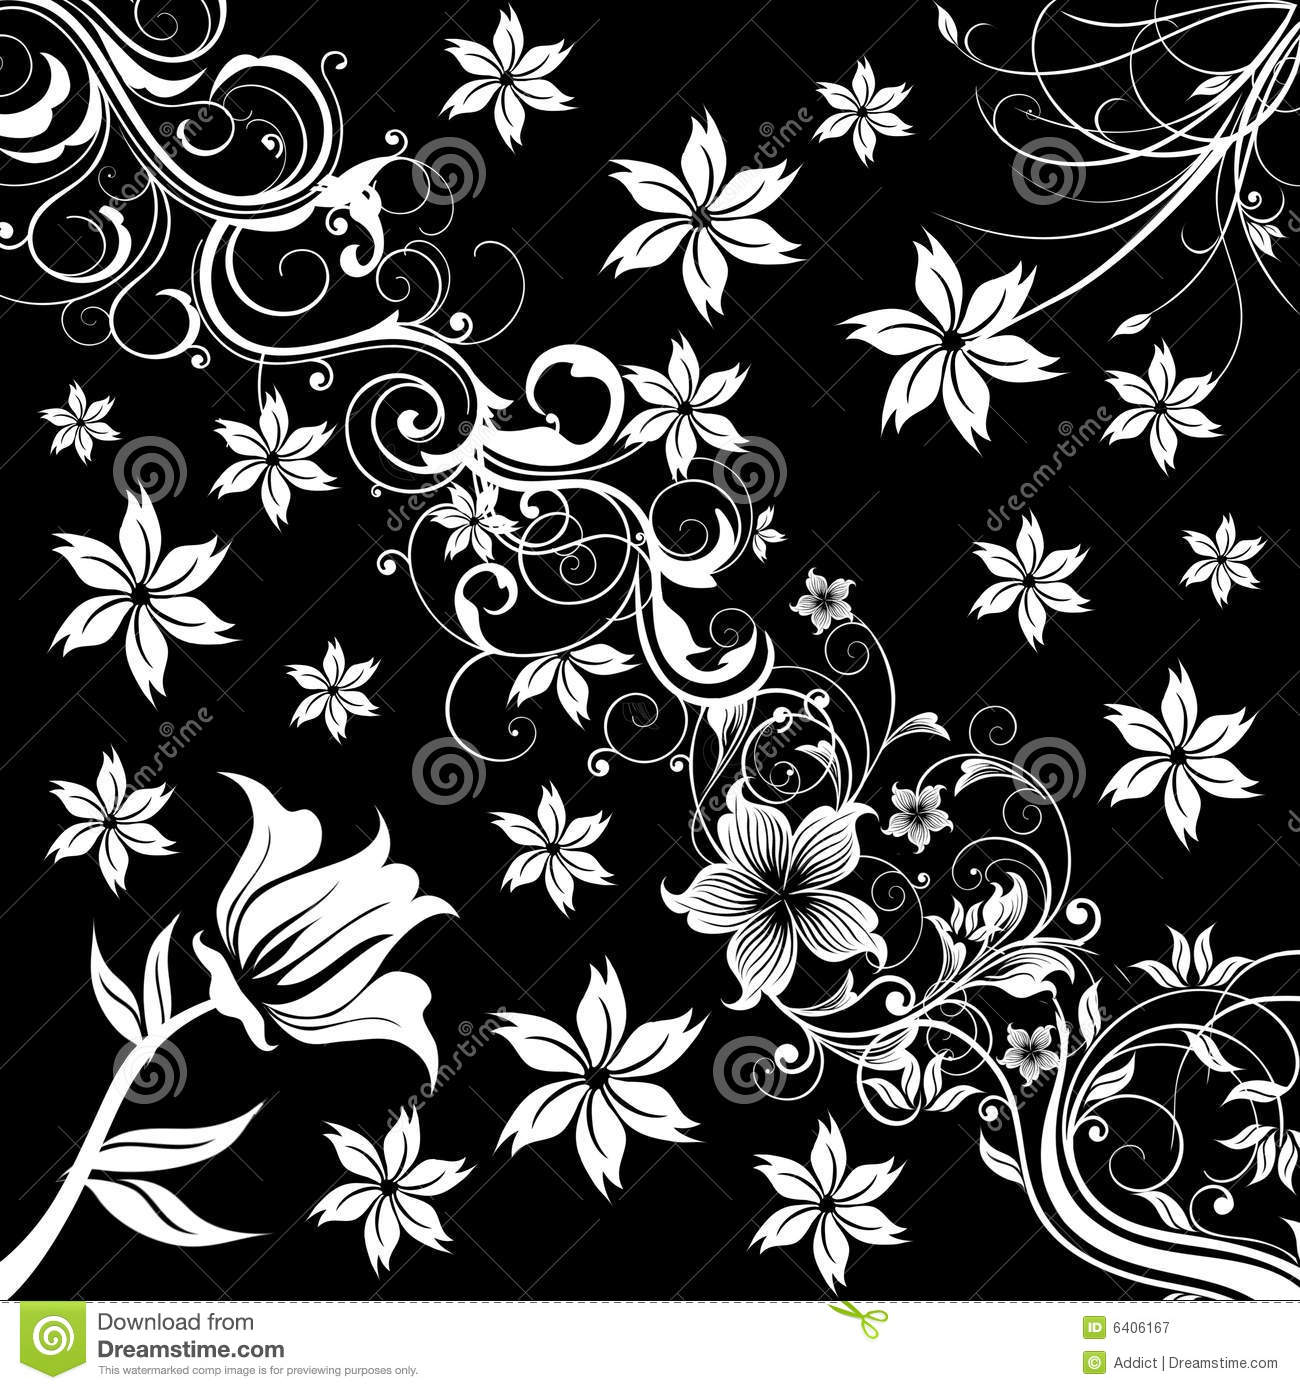 Black Flower Pattern Stock Images: Flower Patterns Illustration Stock Illustration